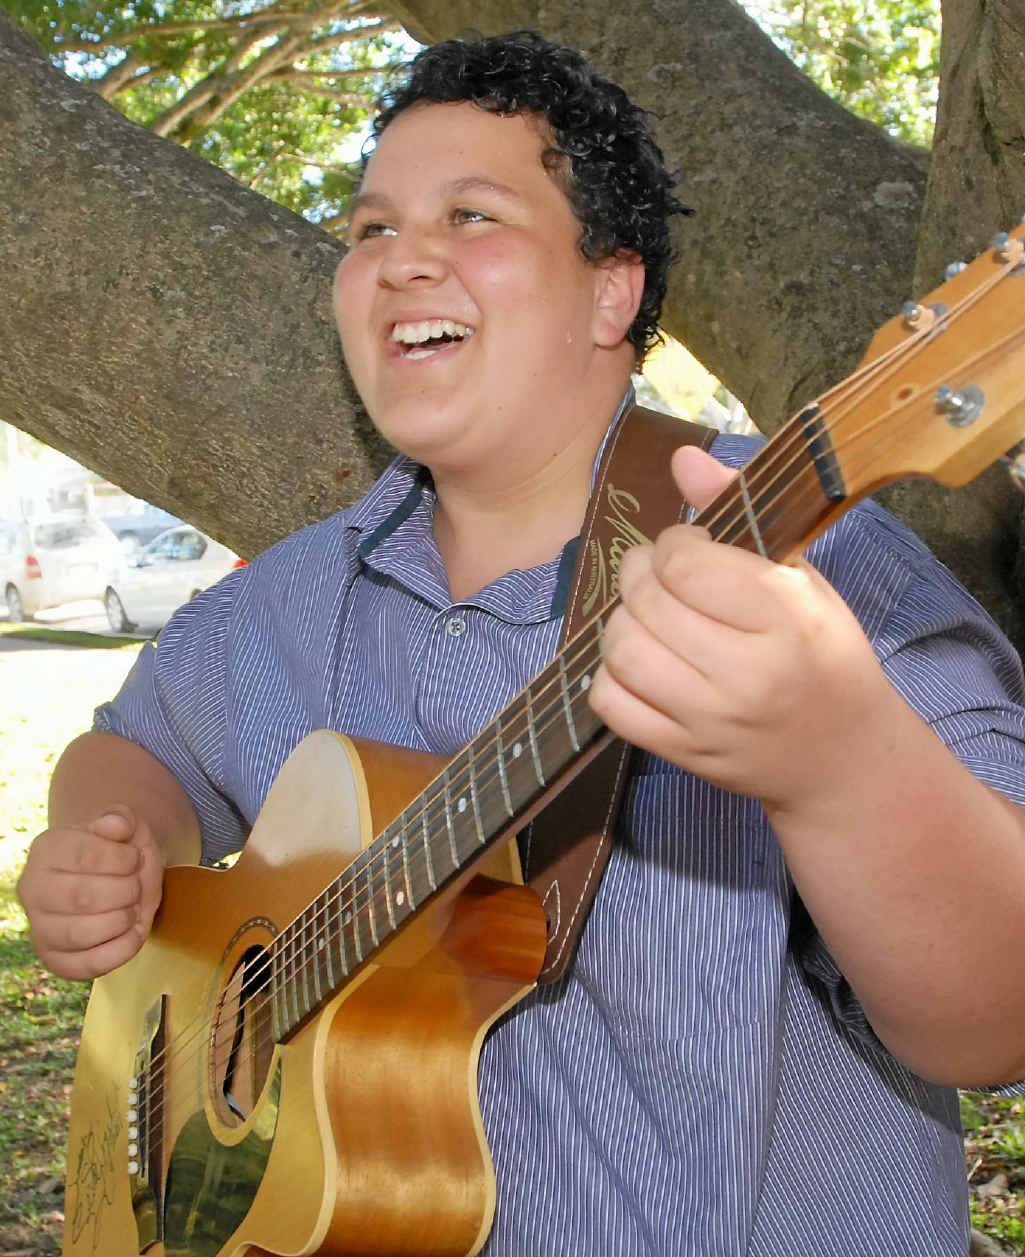 Mackay North State High School student Judah Kelly is carving out a music career for himself. The talented 15-year-old made it through to the X Factor's boot camp in Sydney.